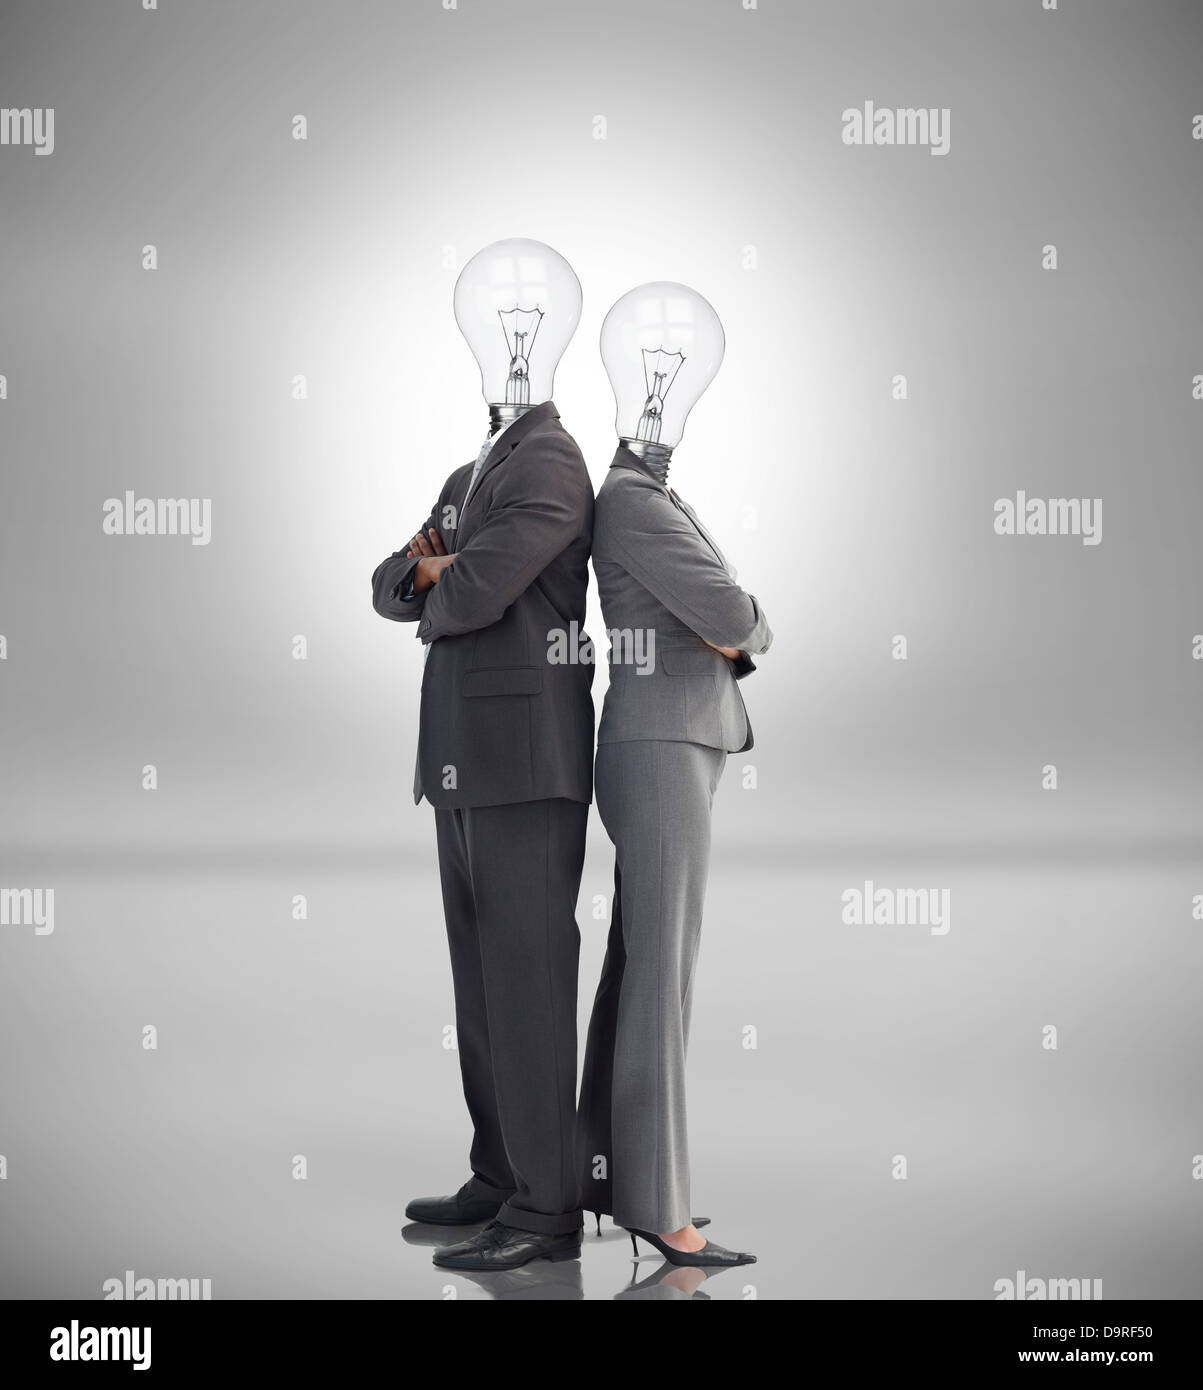 Business people with light bulbs instead of heads - Stock Image